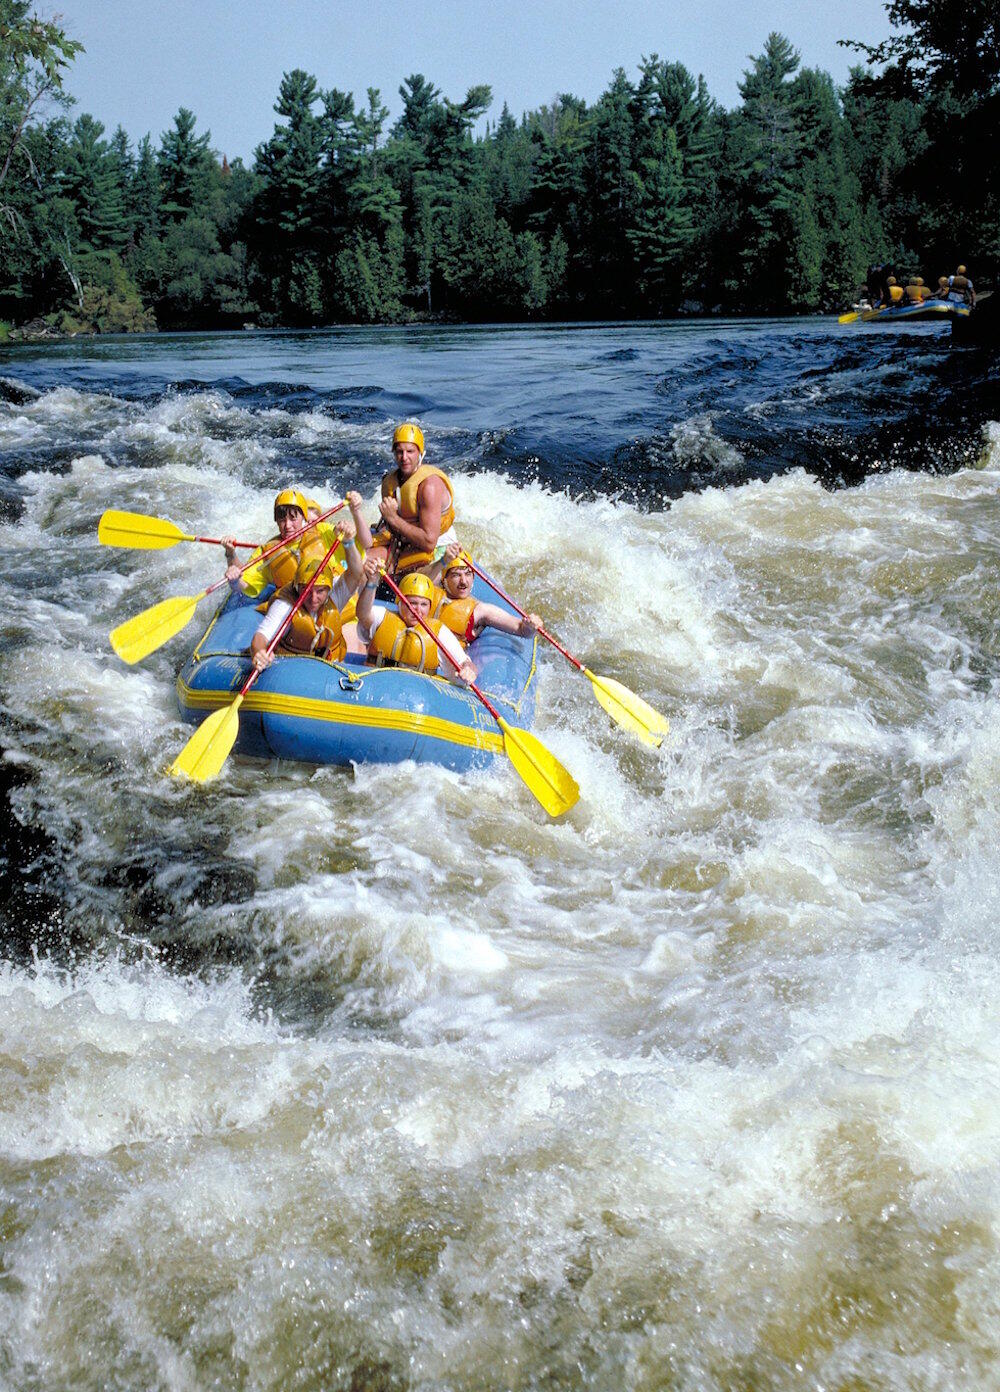 6 people paddling a small raft in white water rapids